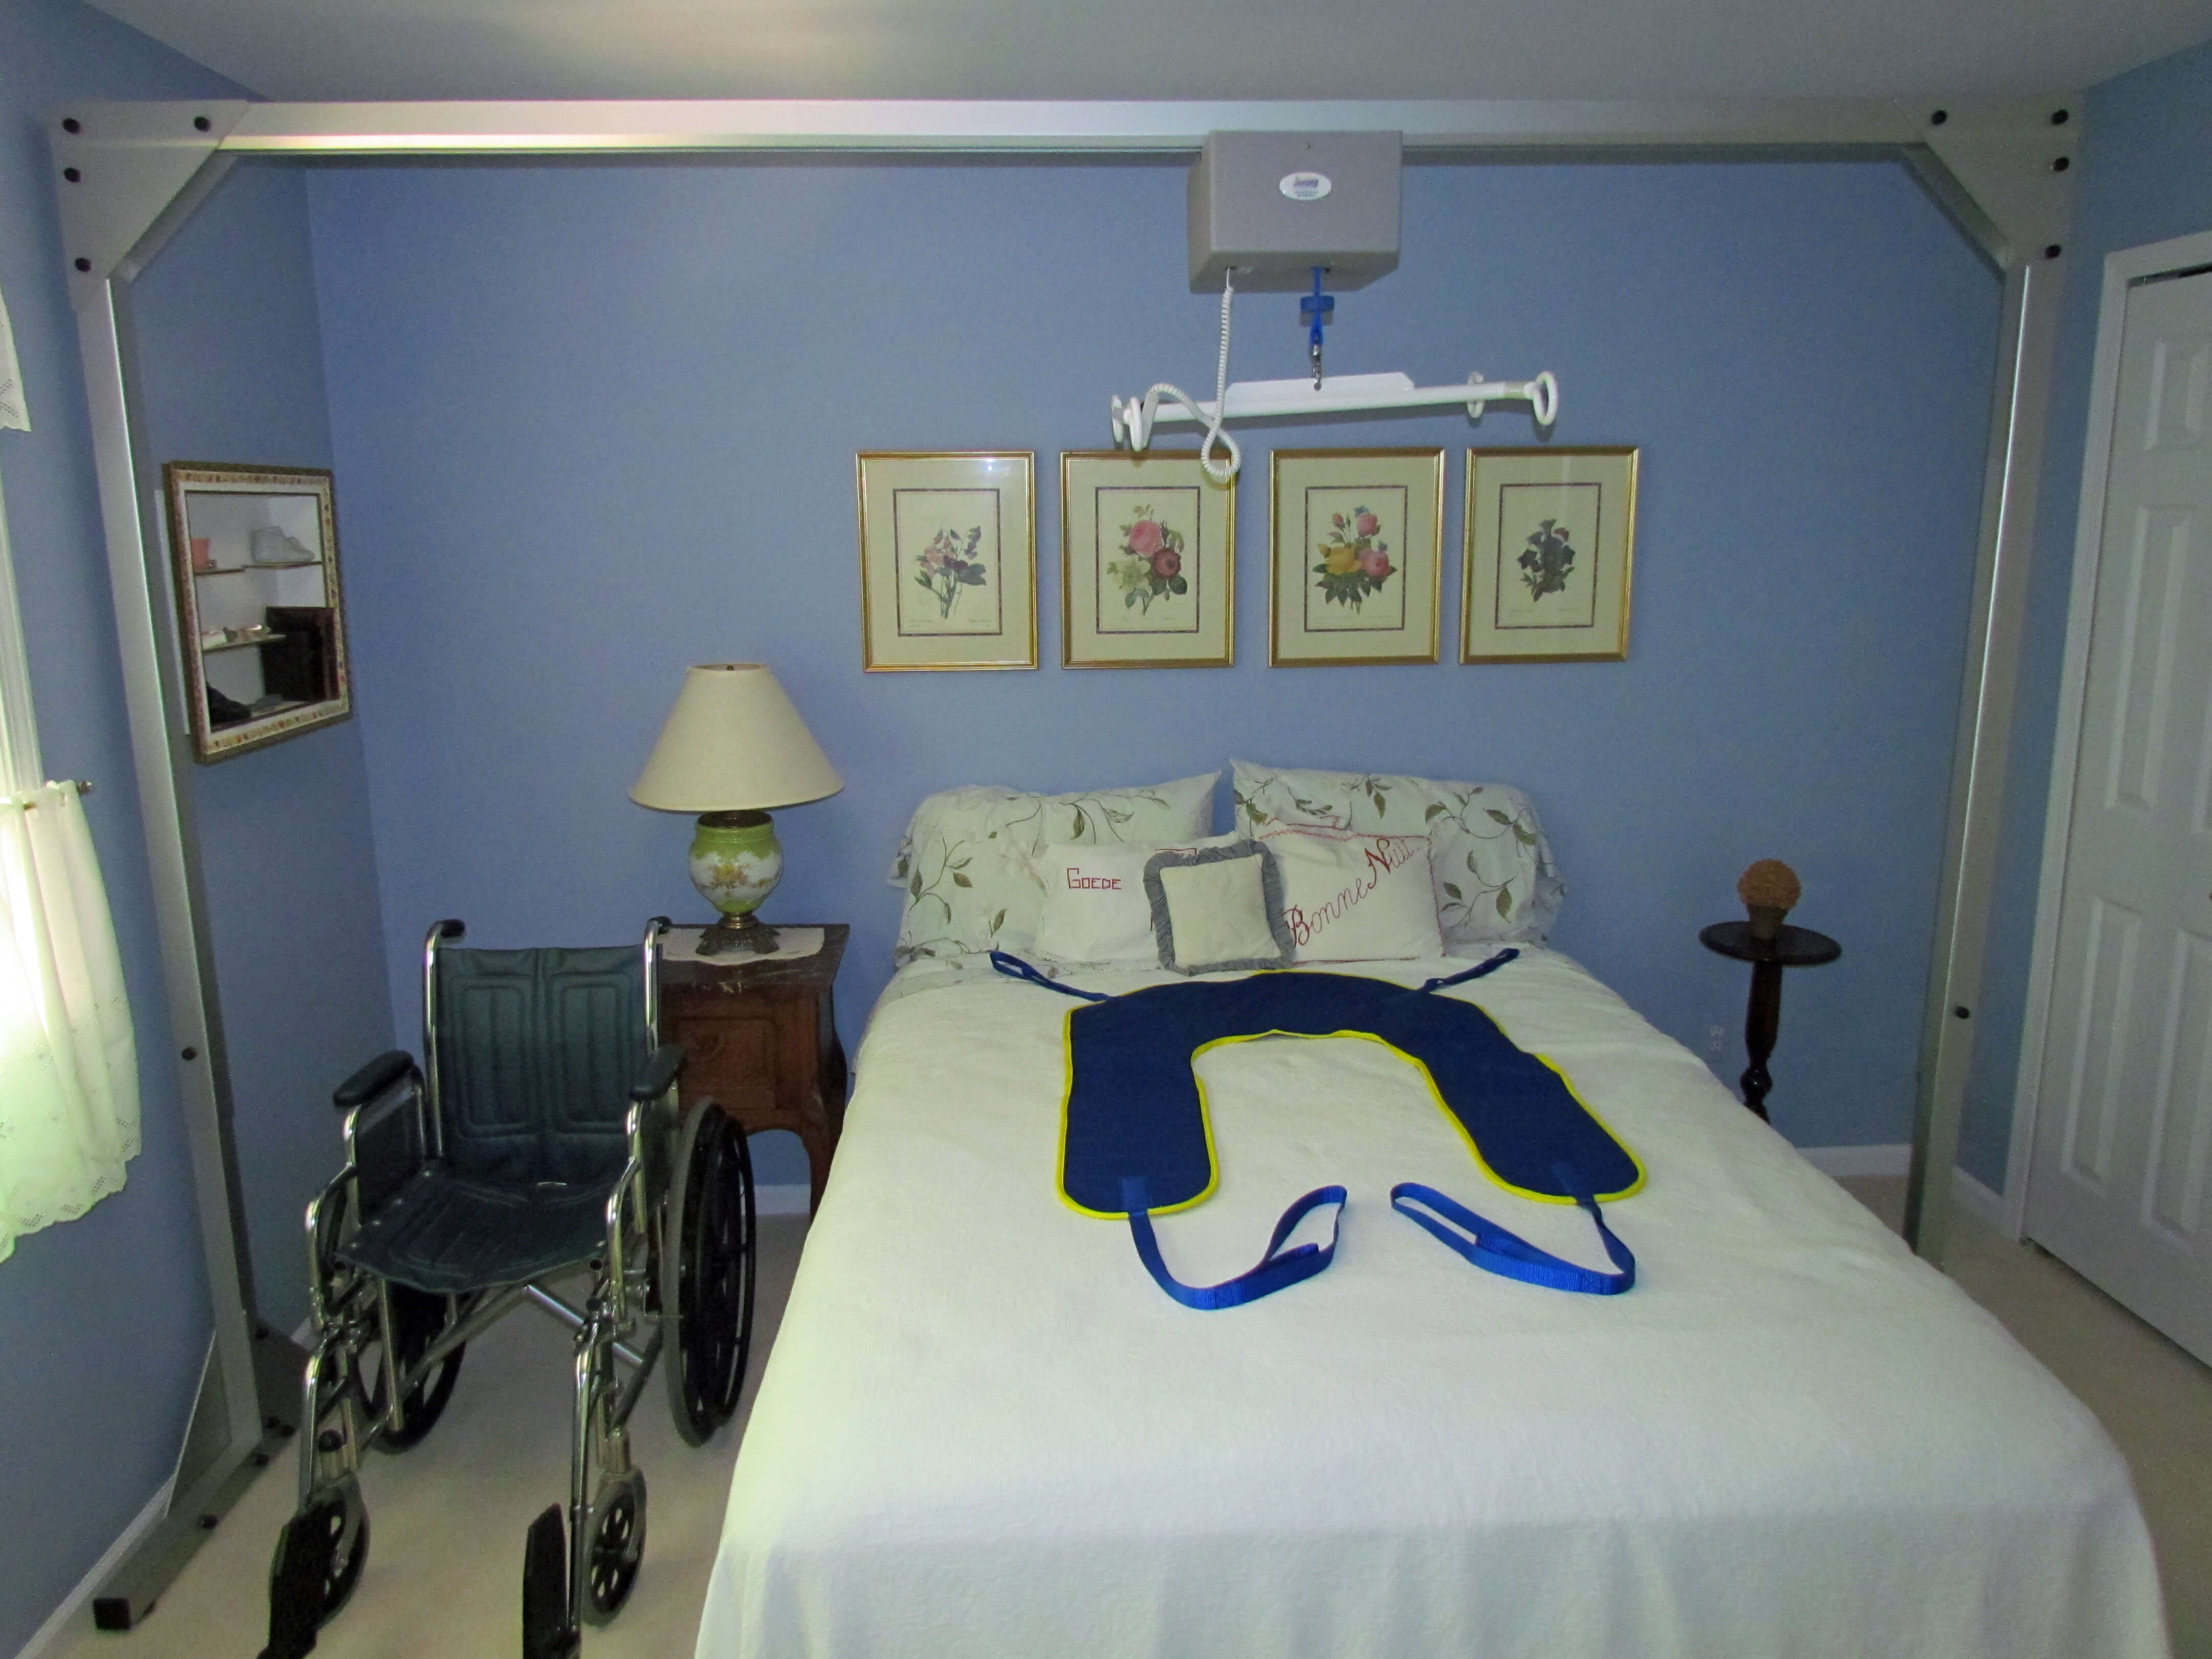 Amramp Overhead Patient Lift helps caregivers move patients from wheelchairs to their beds.